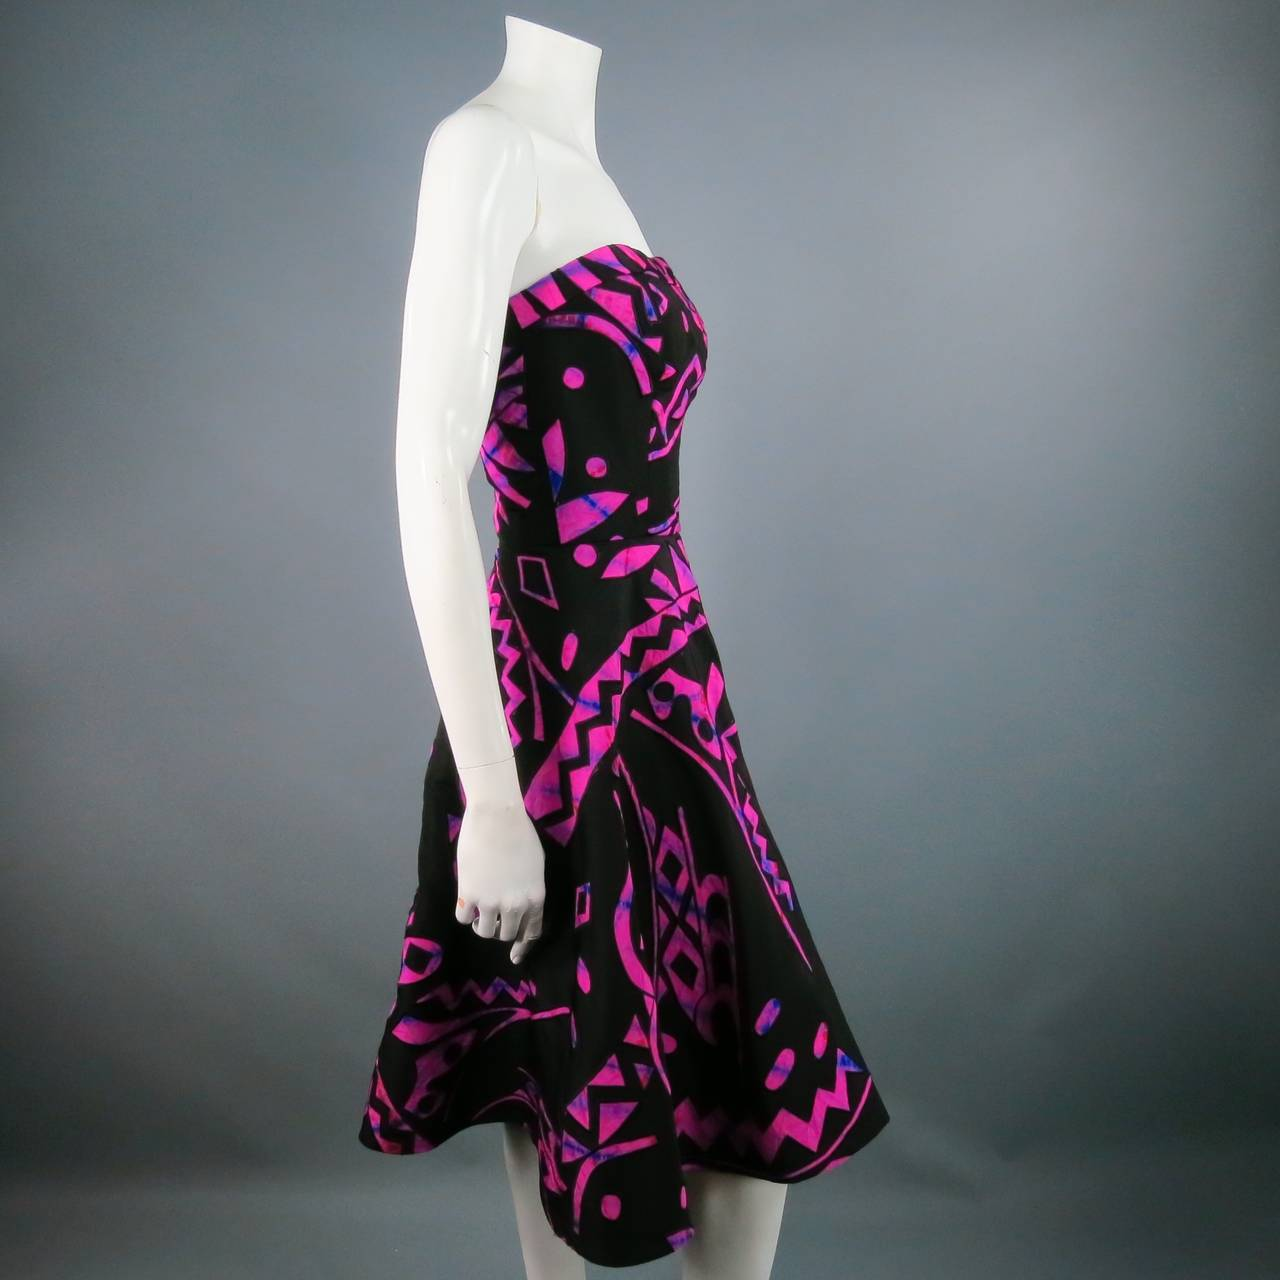 Fabulous strapless cocktail dress by OSCAR DE LA RENTA. A very unique style for Spring/Summer in a classic fitted bodice,including built in bustier, with flare skirt in a black silk material with fuchsia and blue tie die tribal print applique.Made